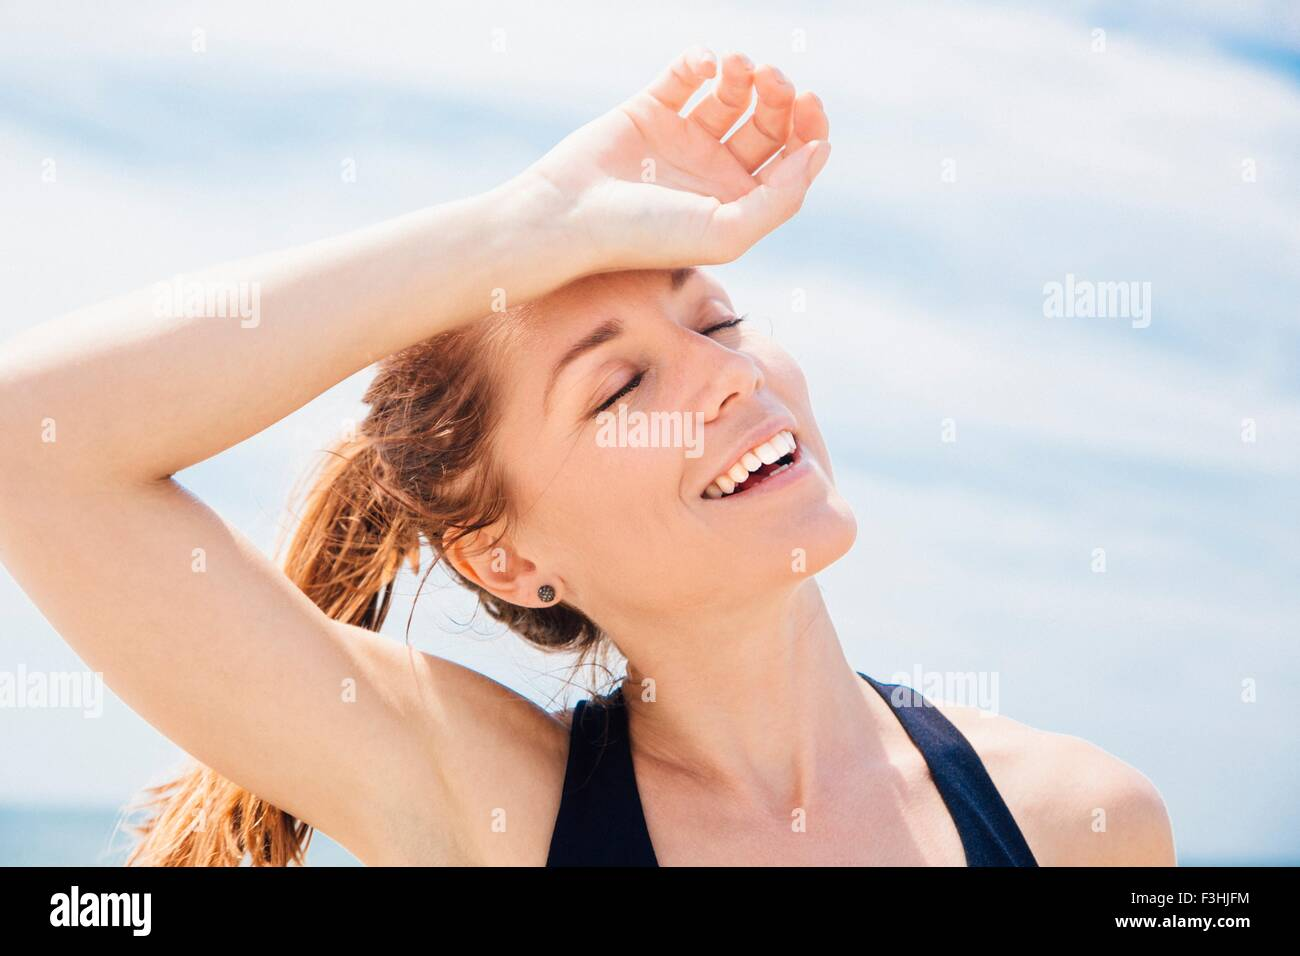 Mid adult woman on beach, arm resting on head - Stock Image